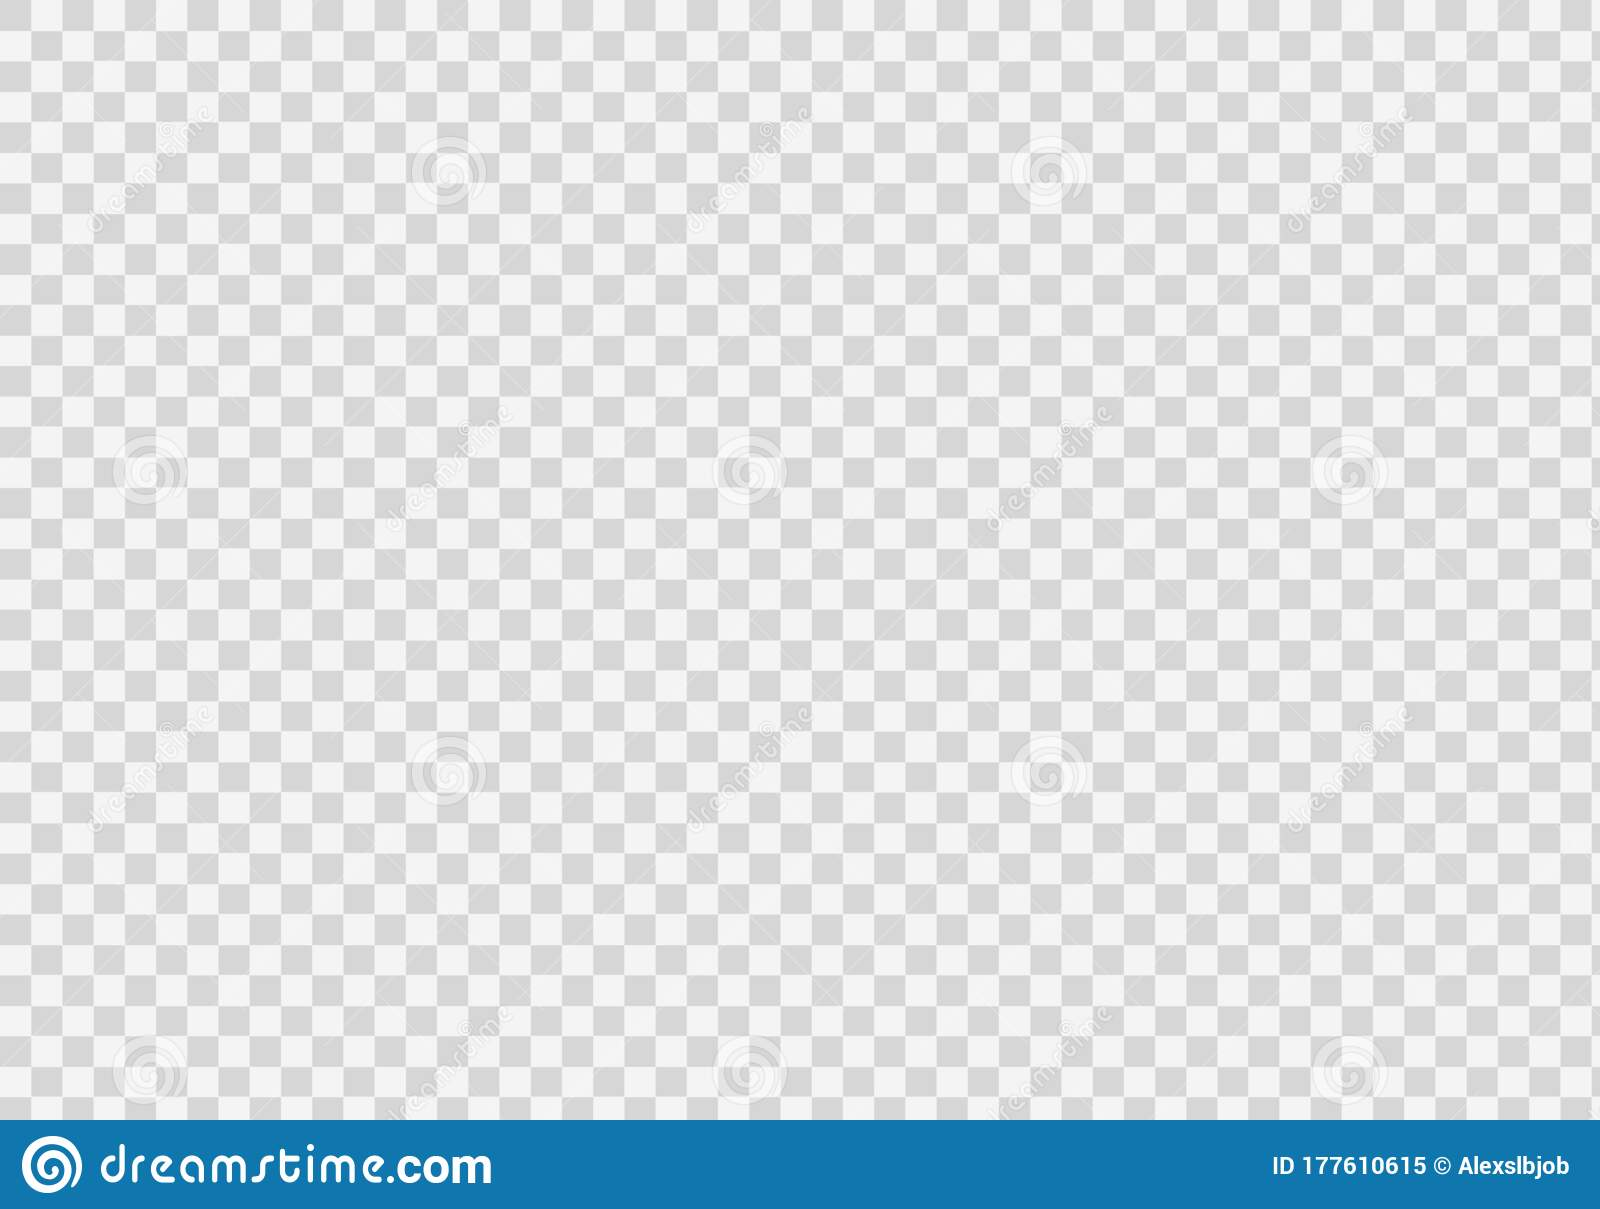 Grid Chess Stock Illustrations 2 778 Grid Chess Stock Illustrations Vectors Clipart Dreamstime